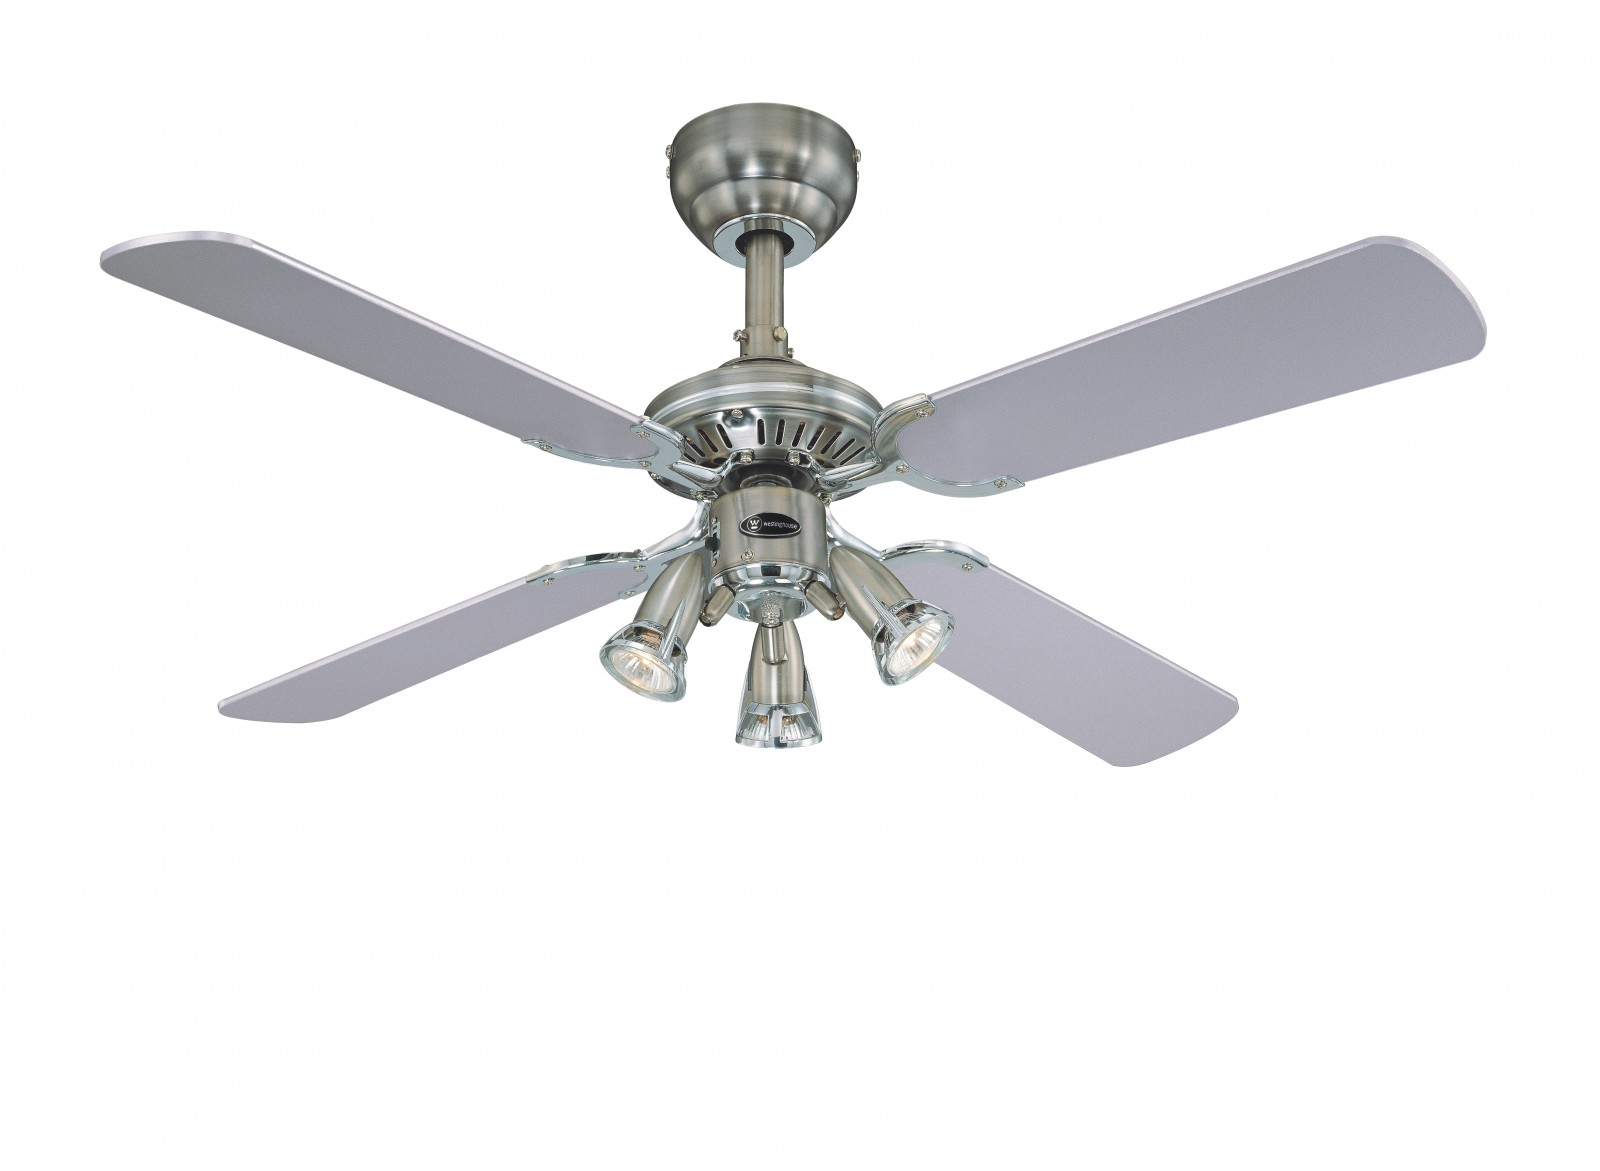 Westinghouse ceiling fan princess euro 105 cm 42 with lighting westinghouse ceiling fan princess euro 105 cm 42 with lighting mozeypictures Image collections